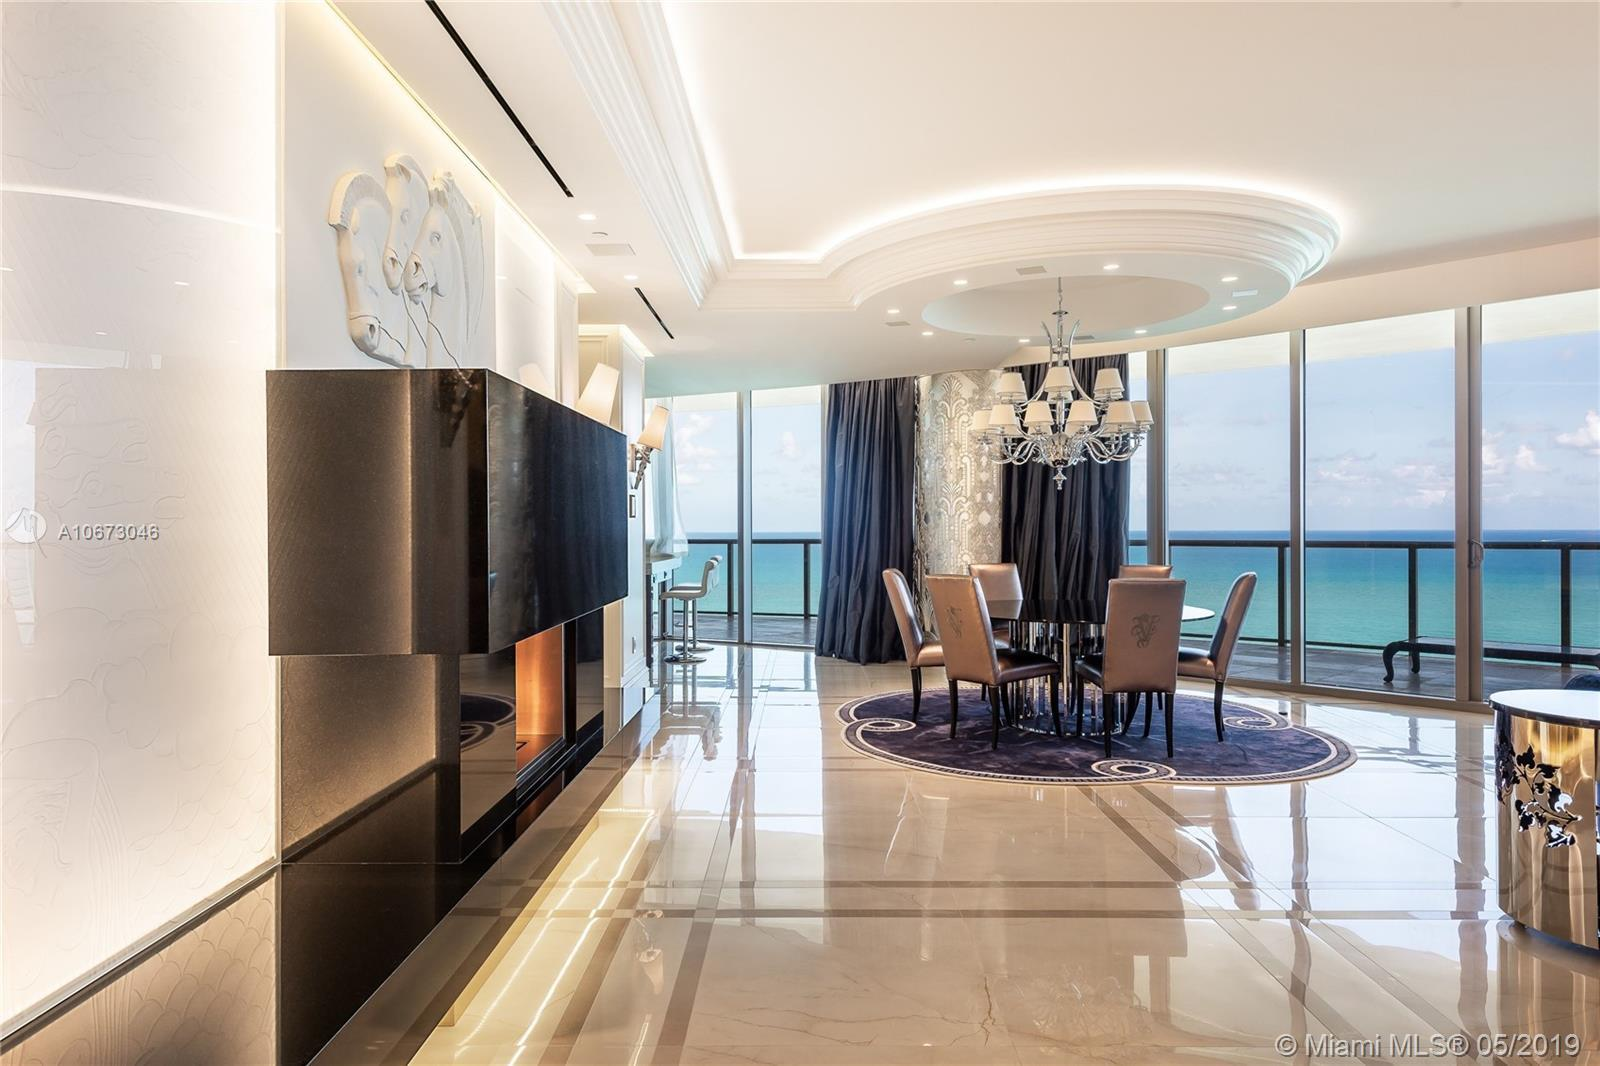 9703 Collins Ave 2600, Bal Harbour, FL, 33154